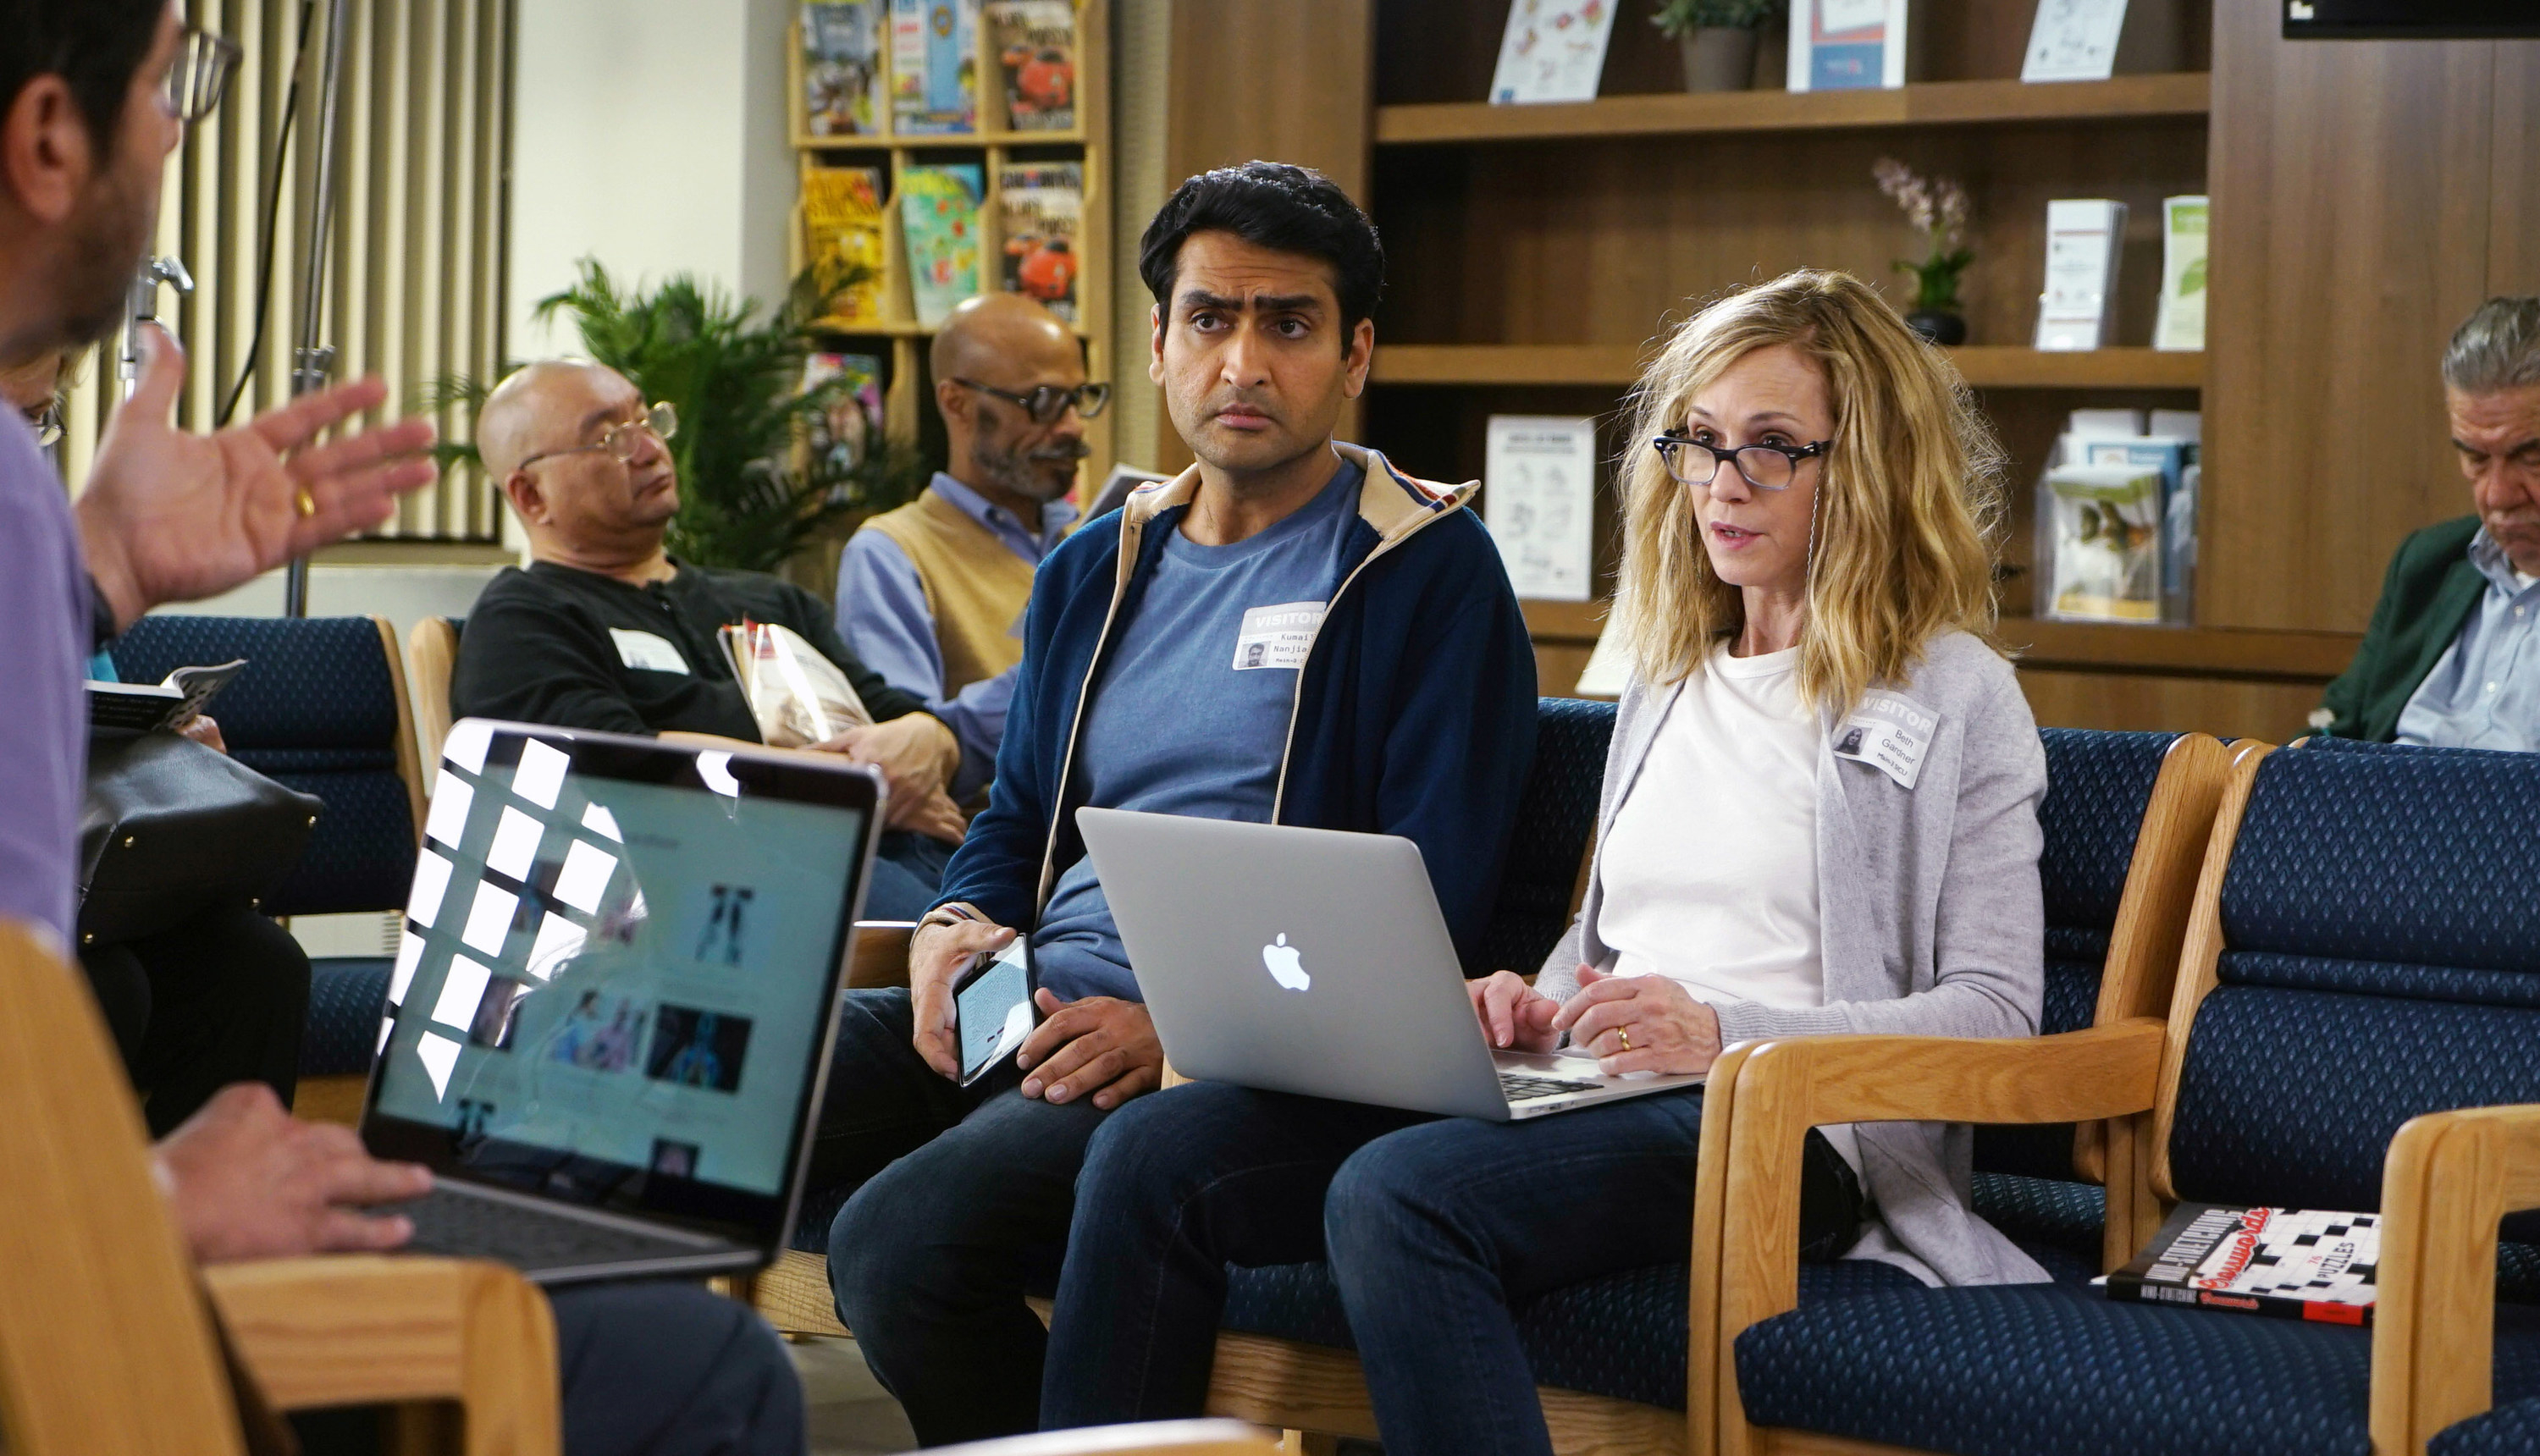 still image from the movie the big sick kumail nanjiani and holly hunter are talking to someone else while on their laptops and phone